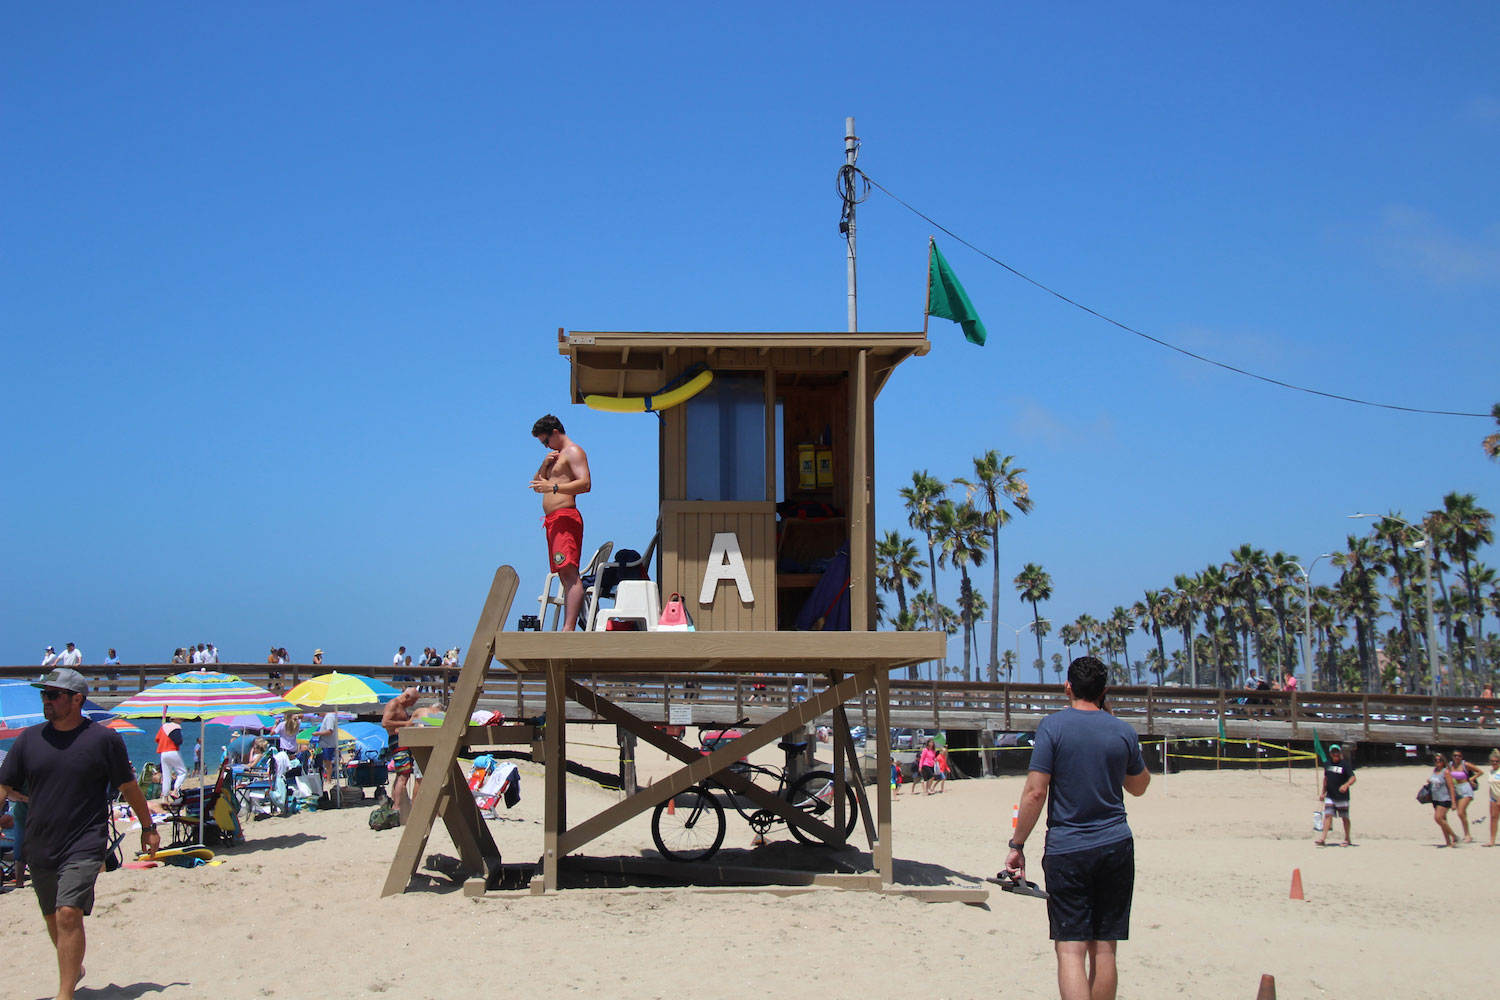 Police Files Lifeguard tower on sand